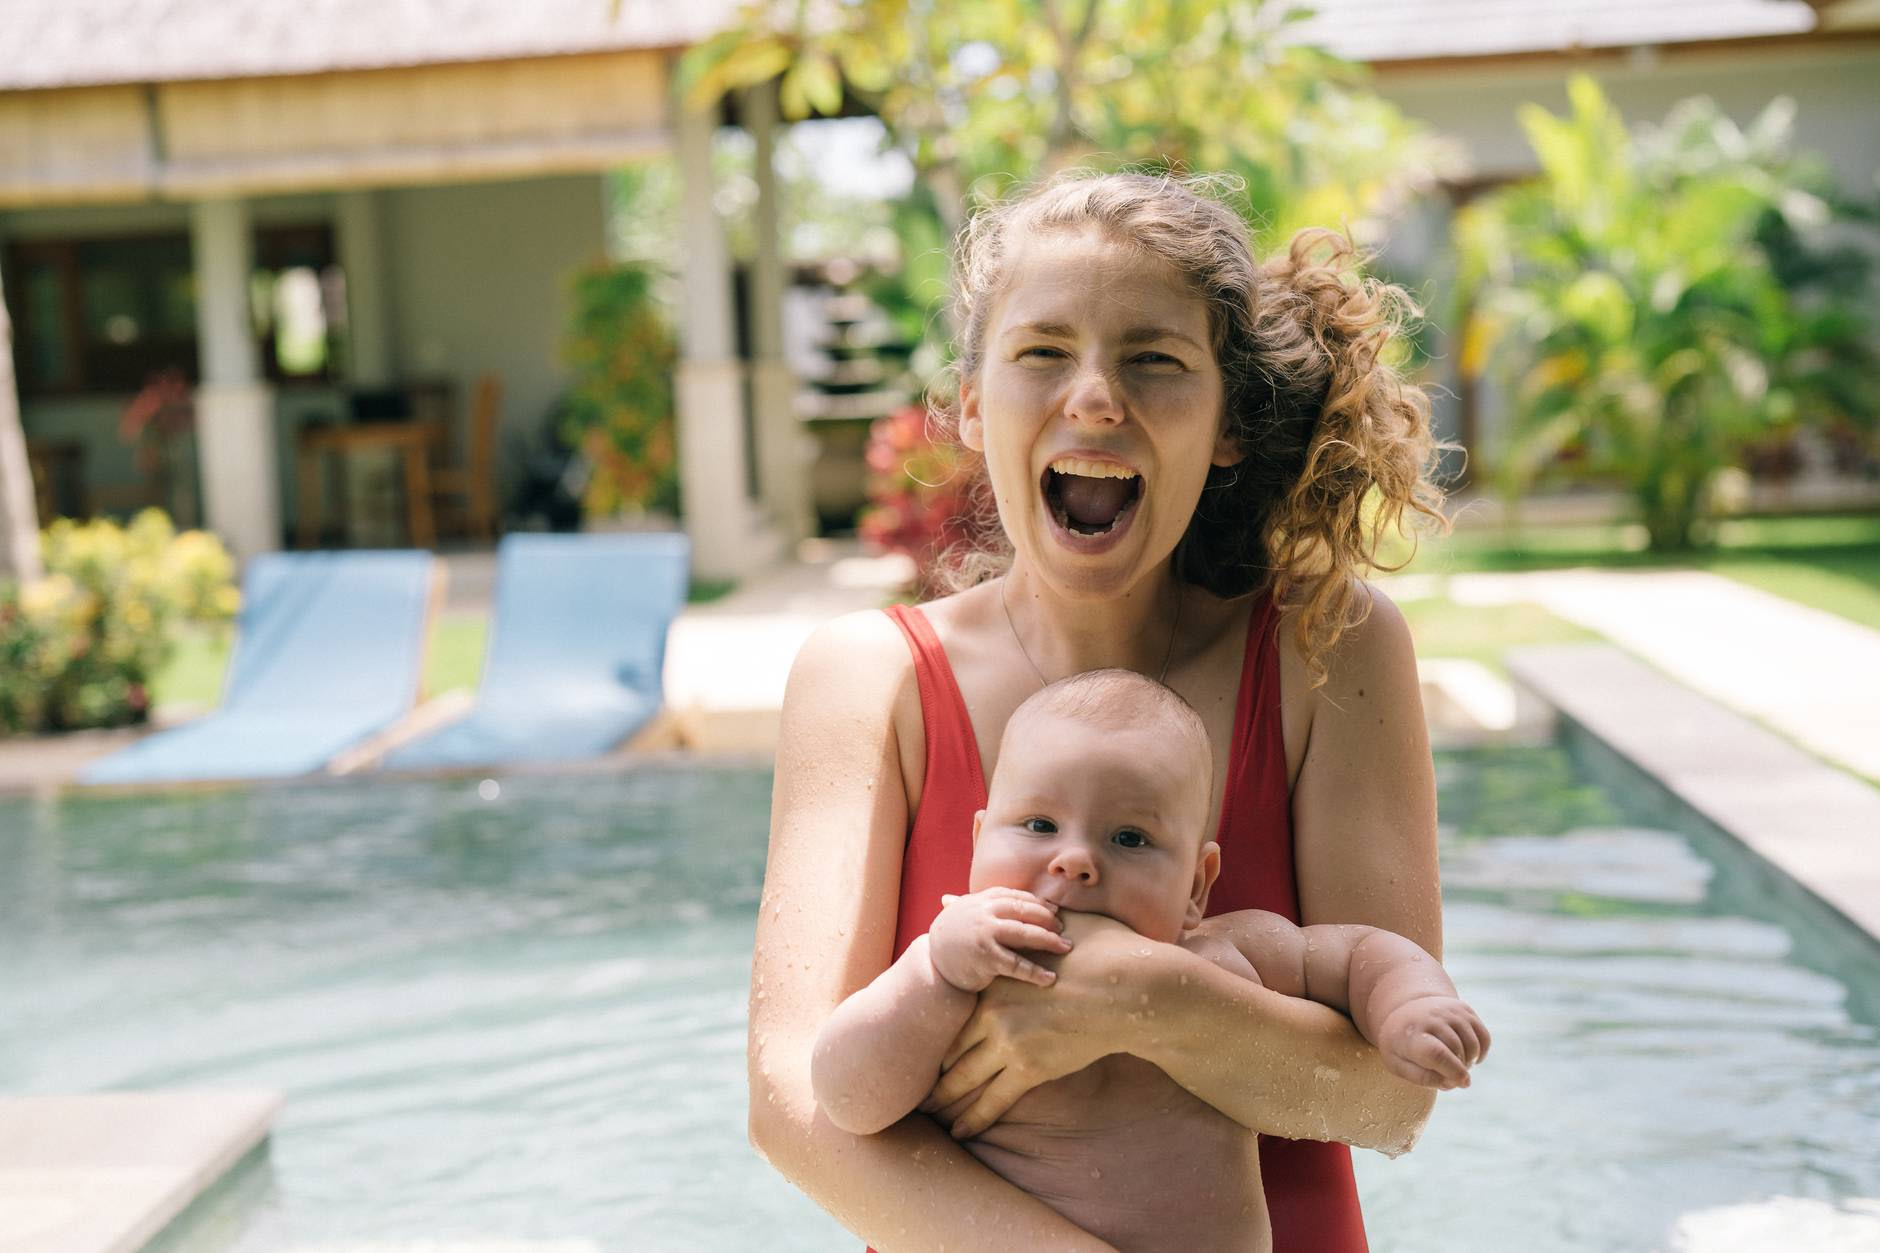 photo of woman holding baby